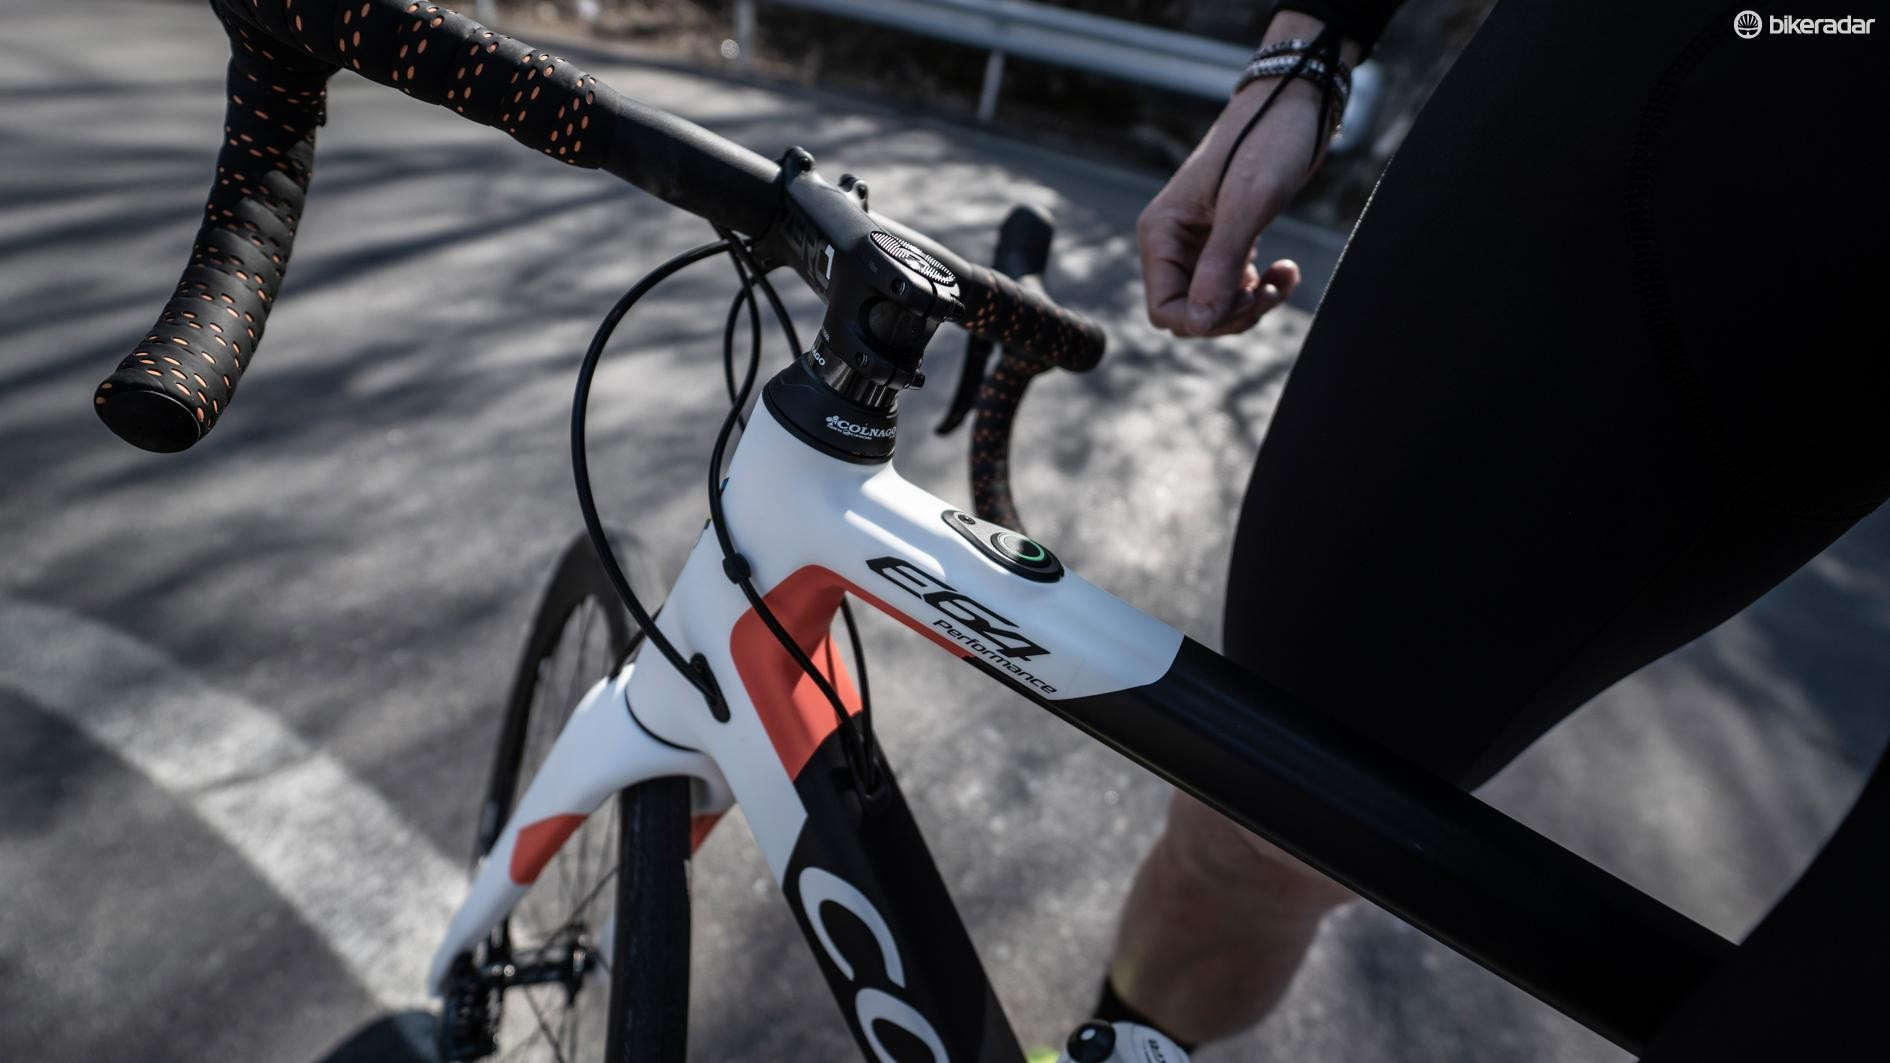 The e-bike system is controlled via a button behind the top tube